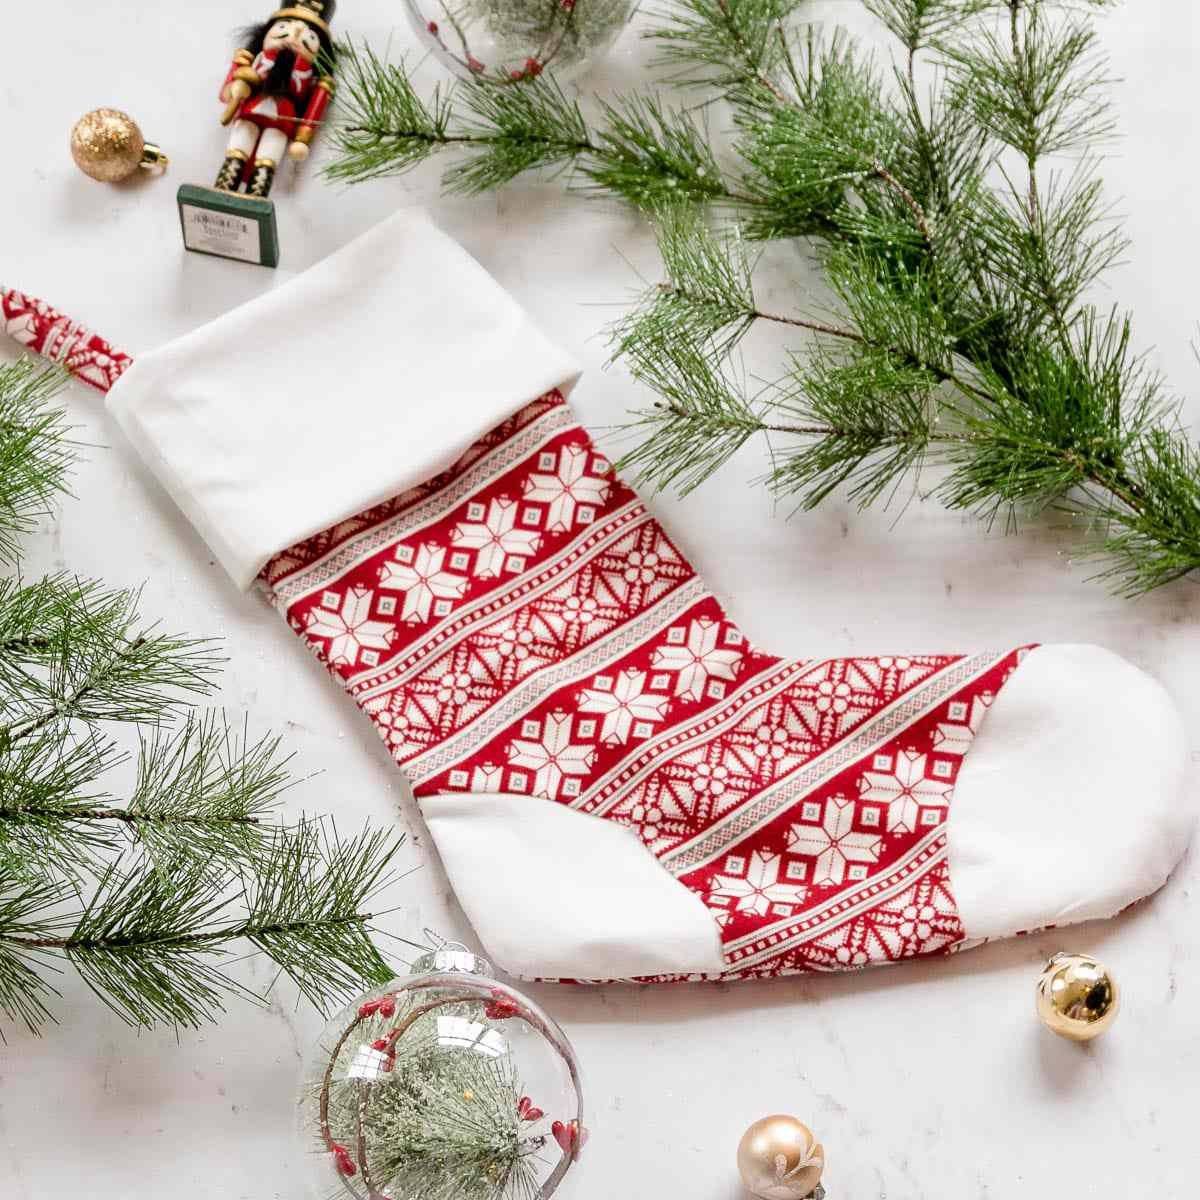 Christmas Stocking Sewing Pattern With Cuff, Heel, and Toe